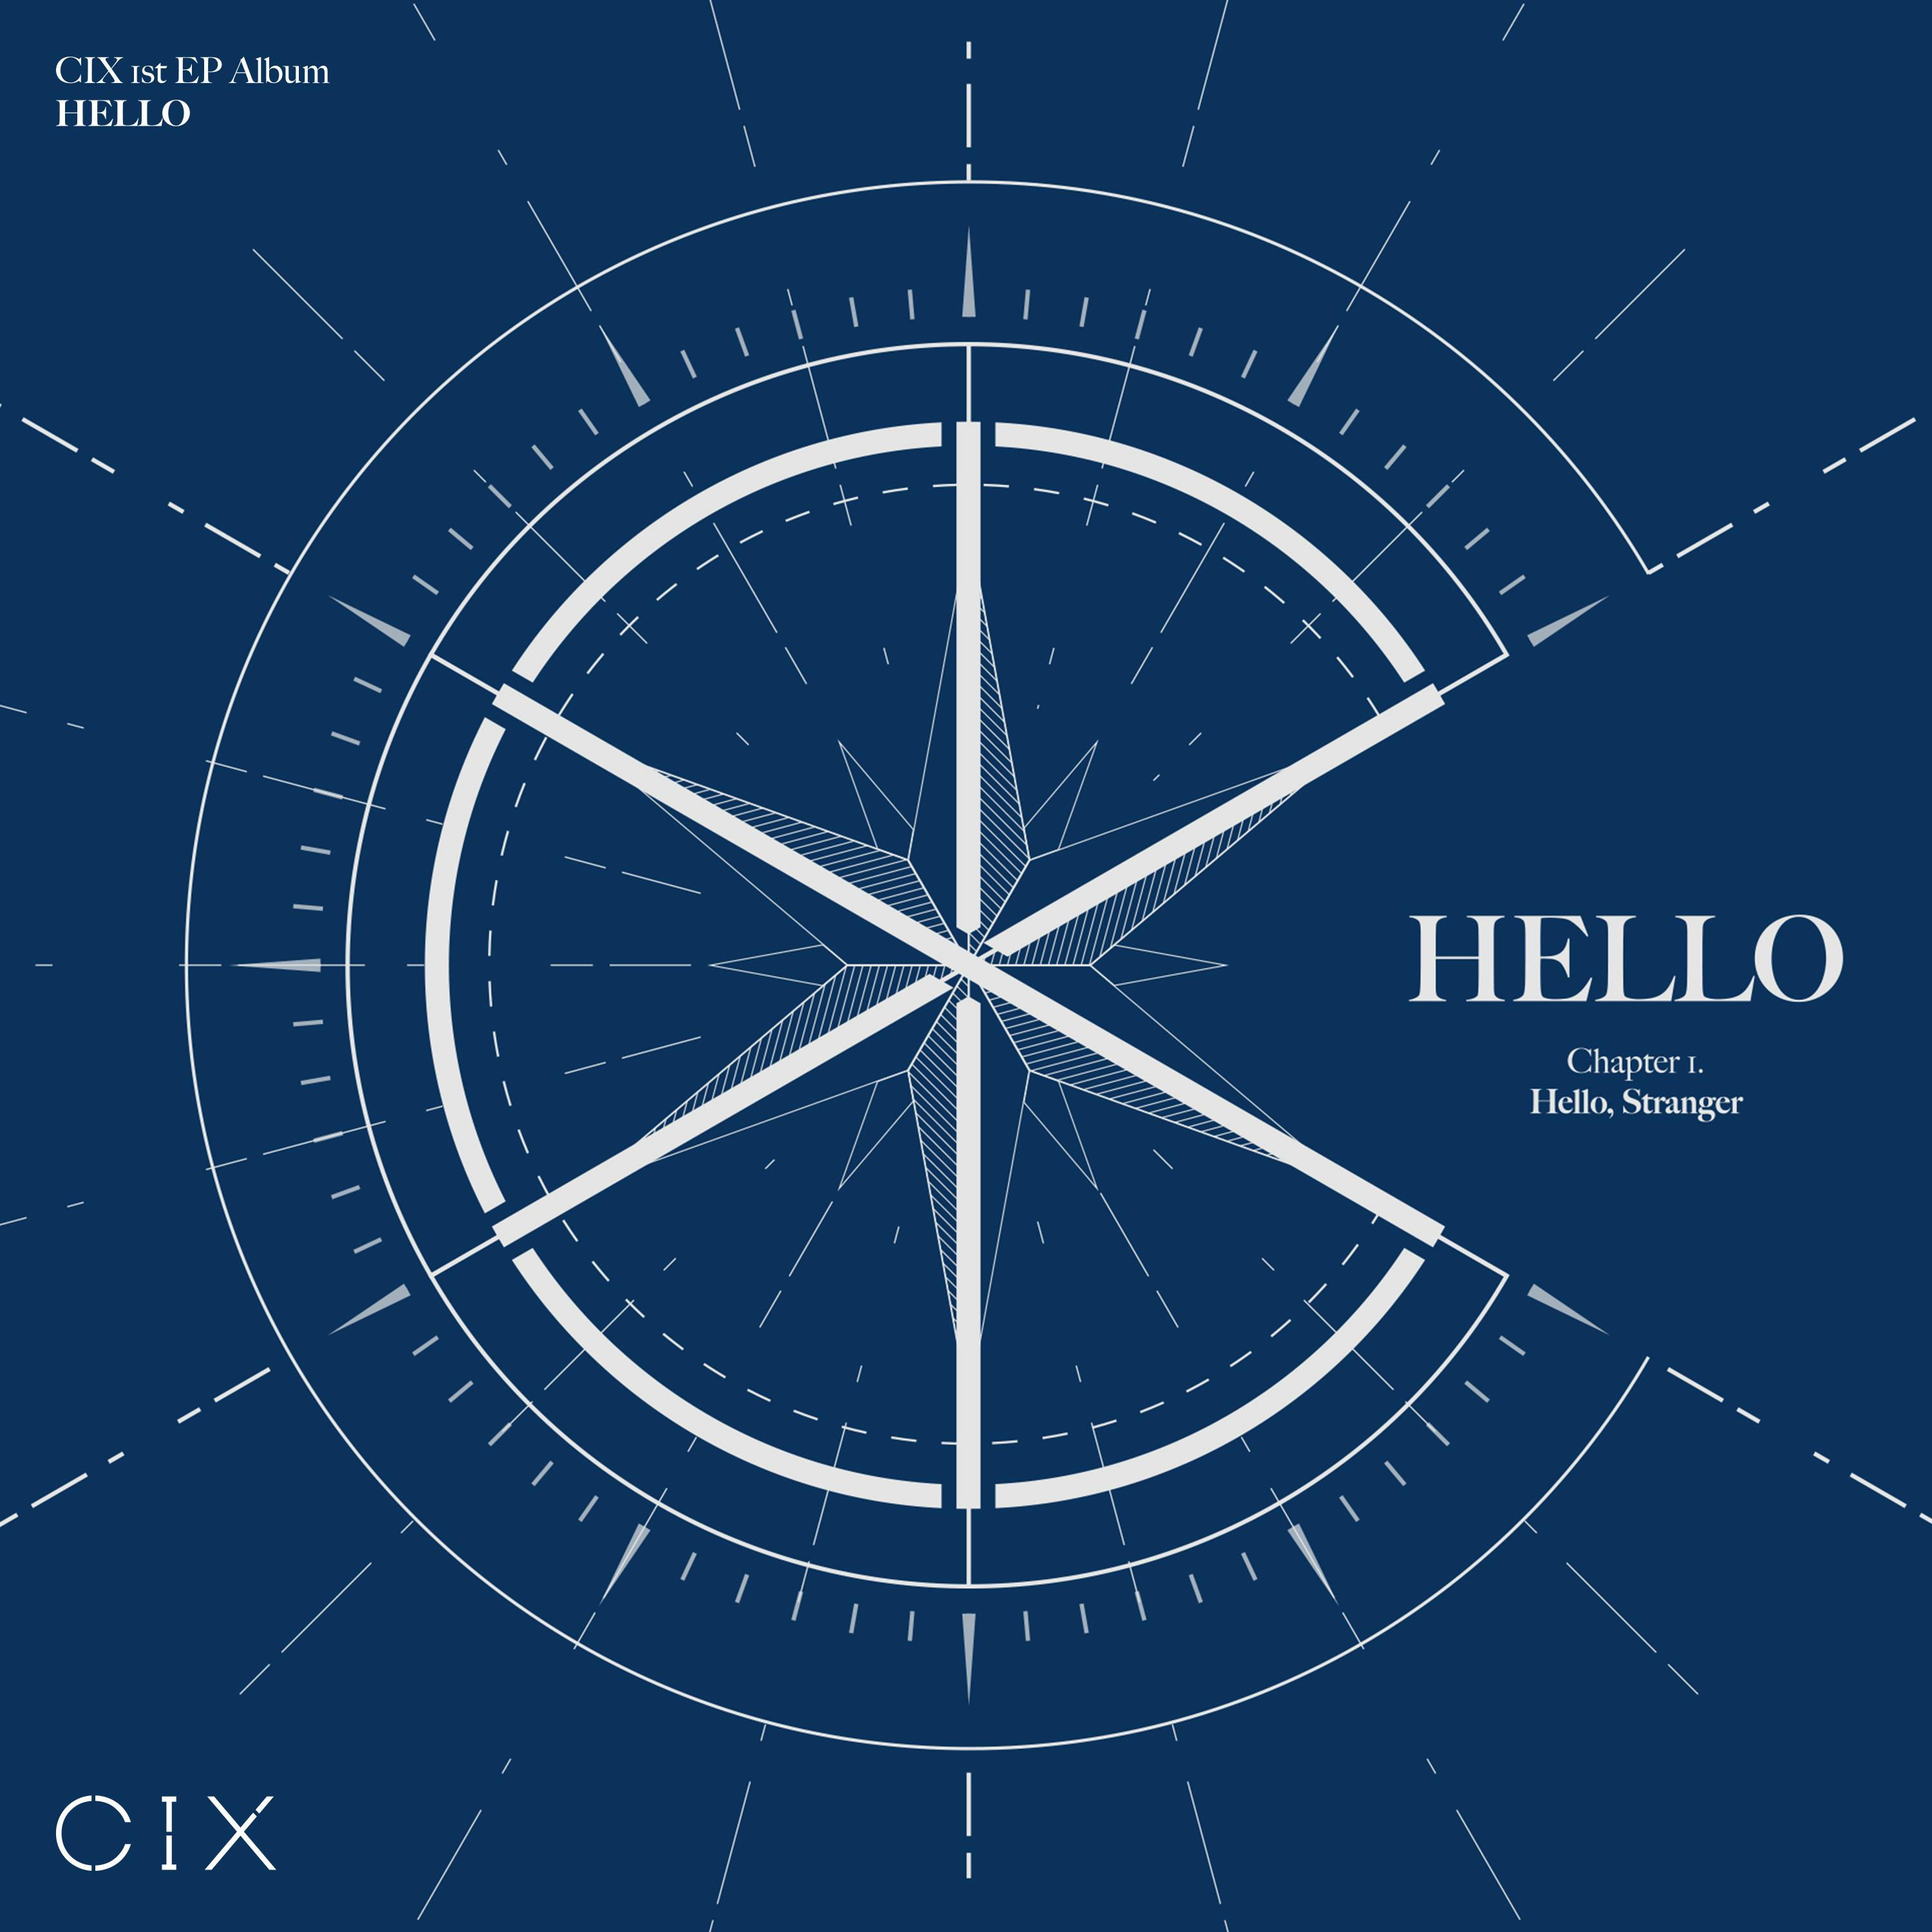 HELLO Chapter 1: Hello, Stranger